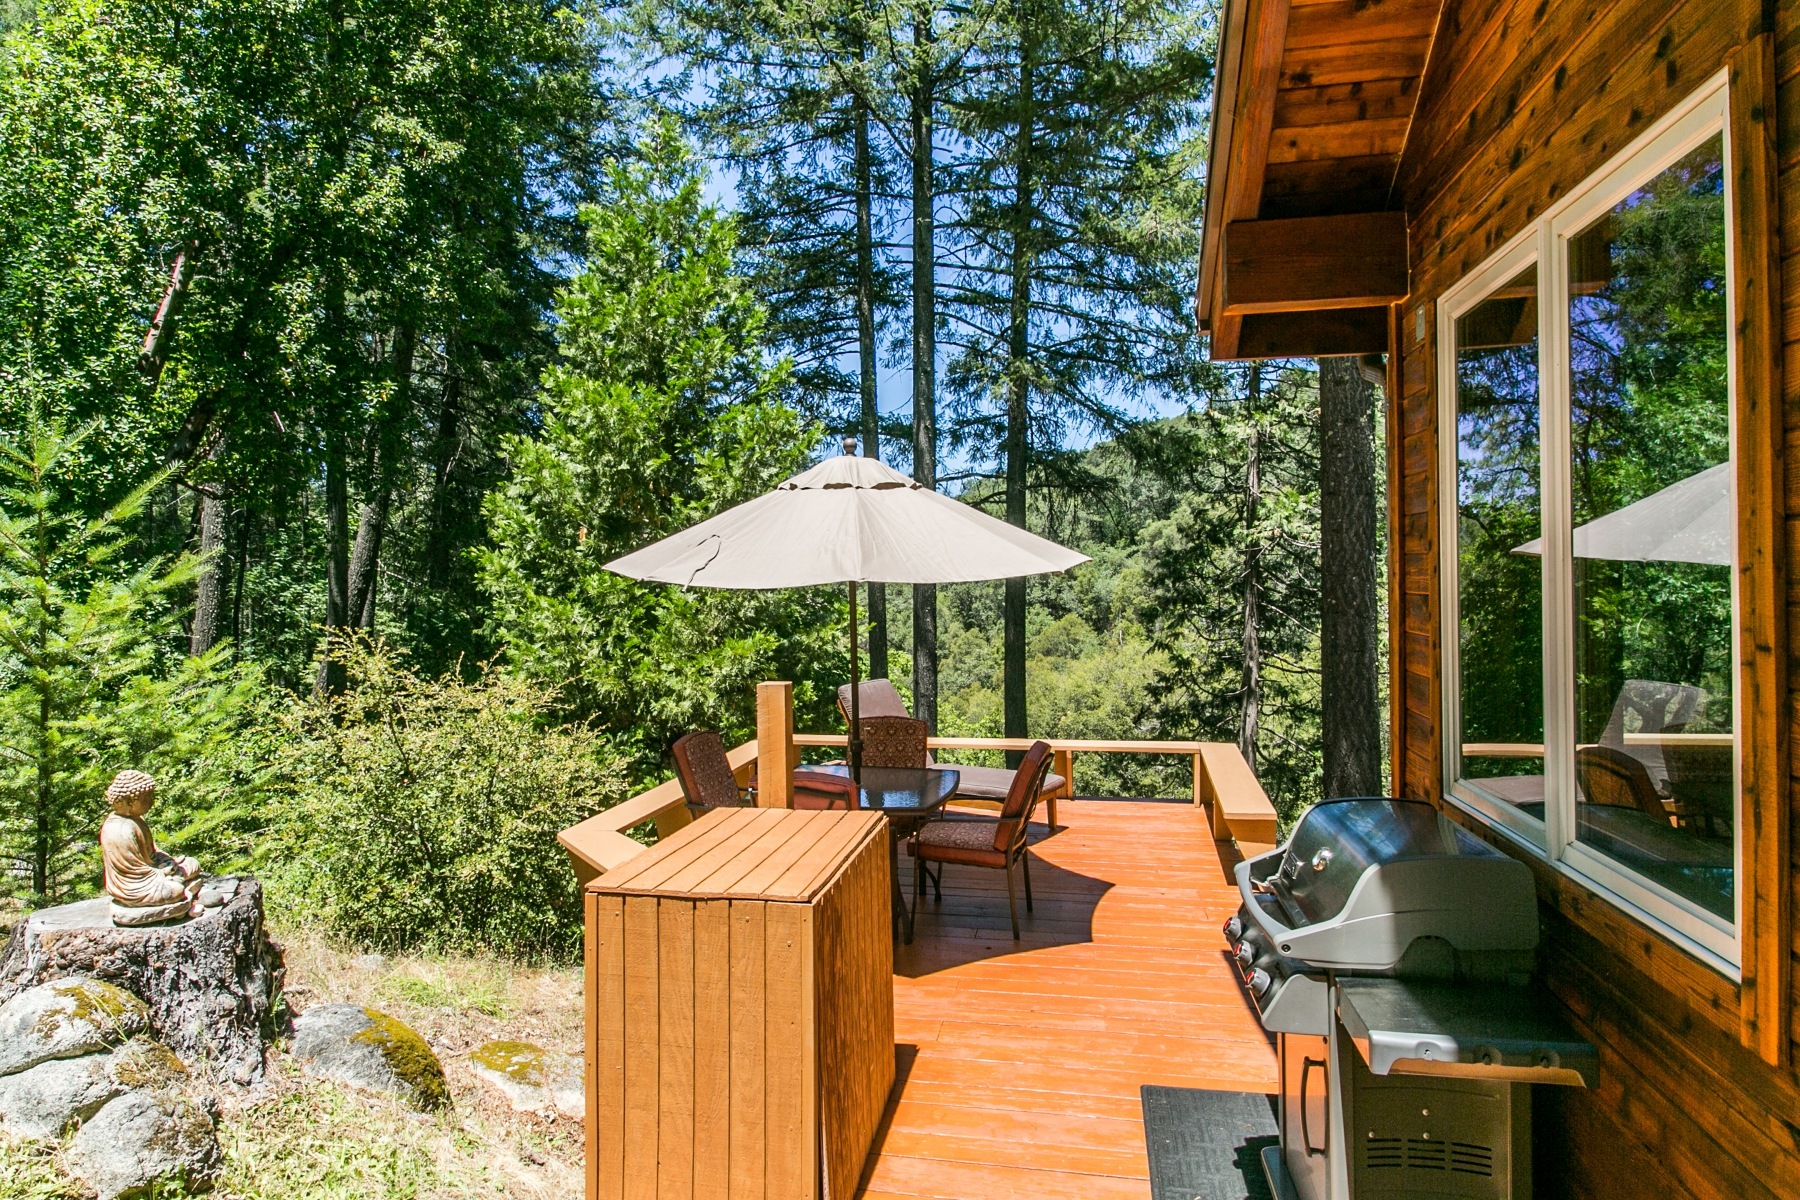 Additional photo for property listing at 21049 New Rome Road, Nevada City, CA 21049 New Rome Road Nevada City, California 95959 United States